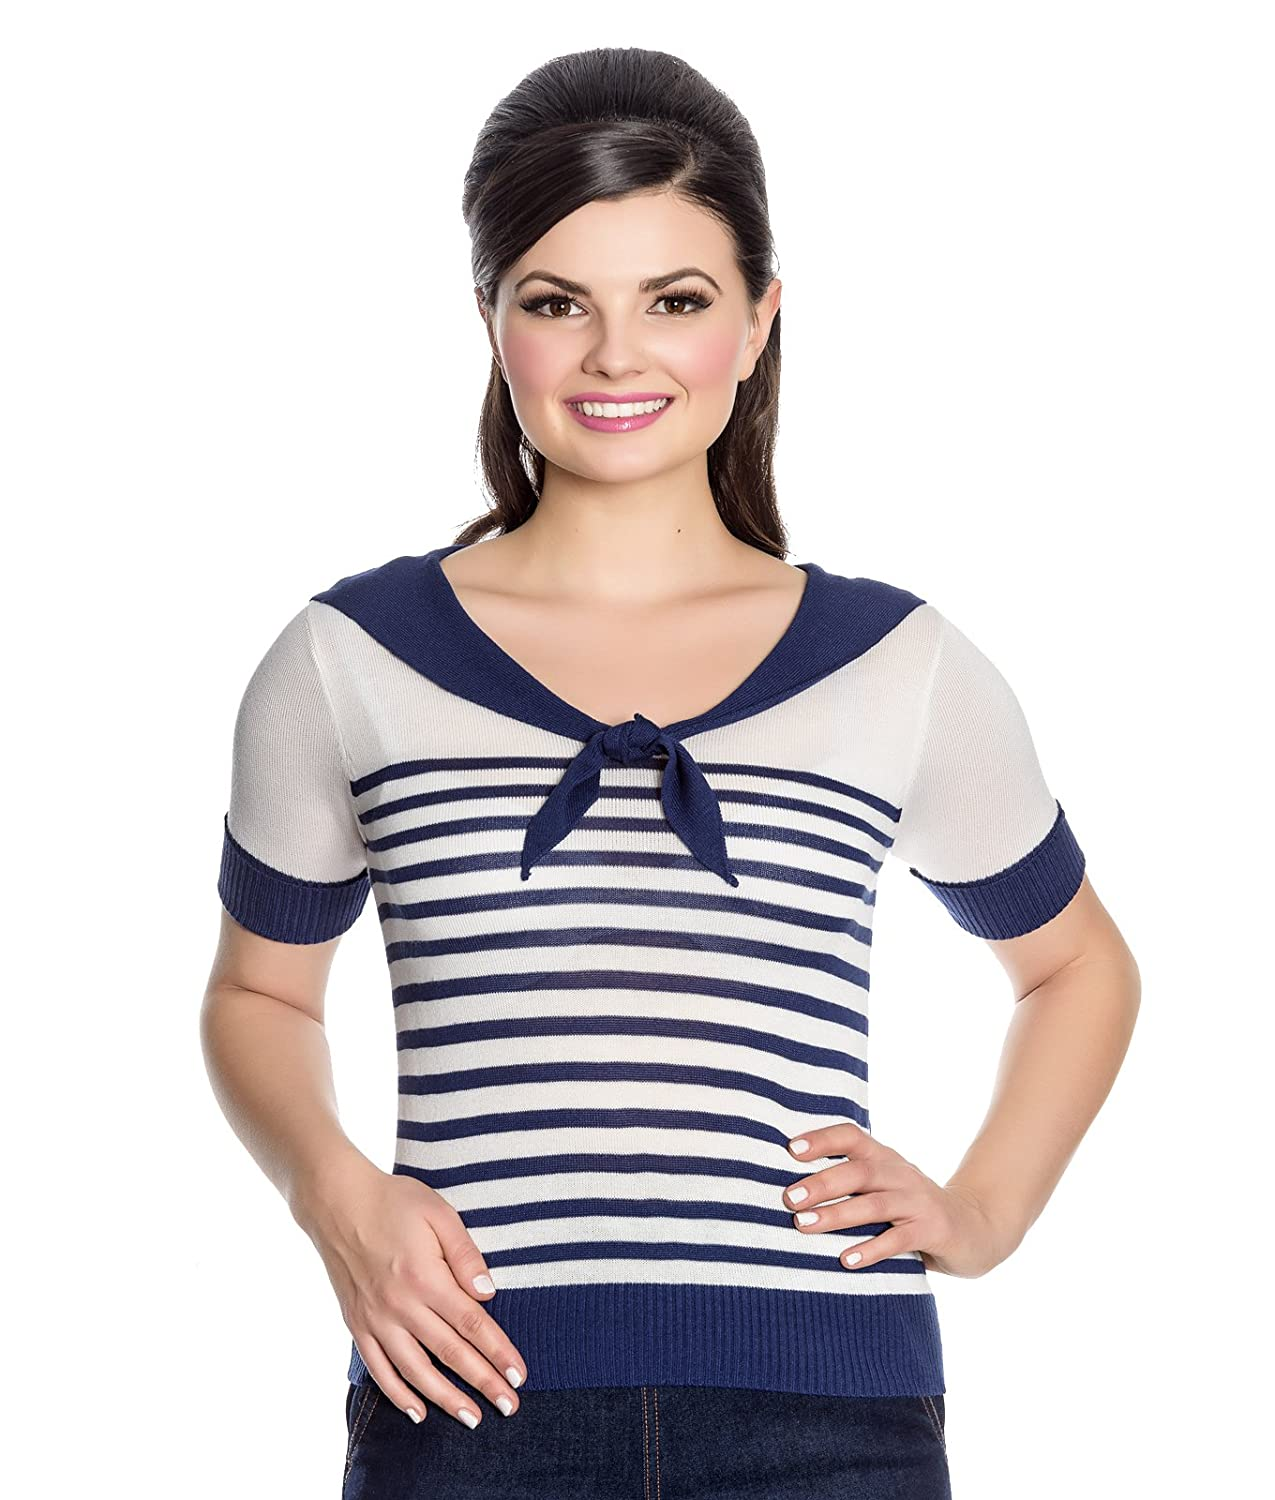 Rosie the Riveter Costume & Outfit Ideas Hell Bunny 50s Coco Nautical Collar Striped Knit Top £20.39 AT vintagedancer.com